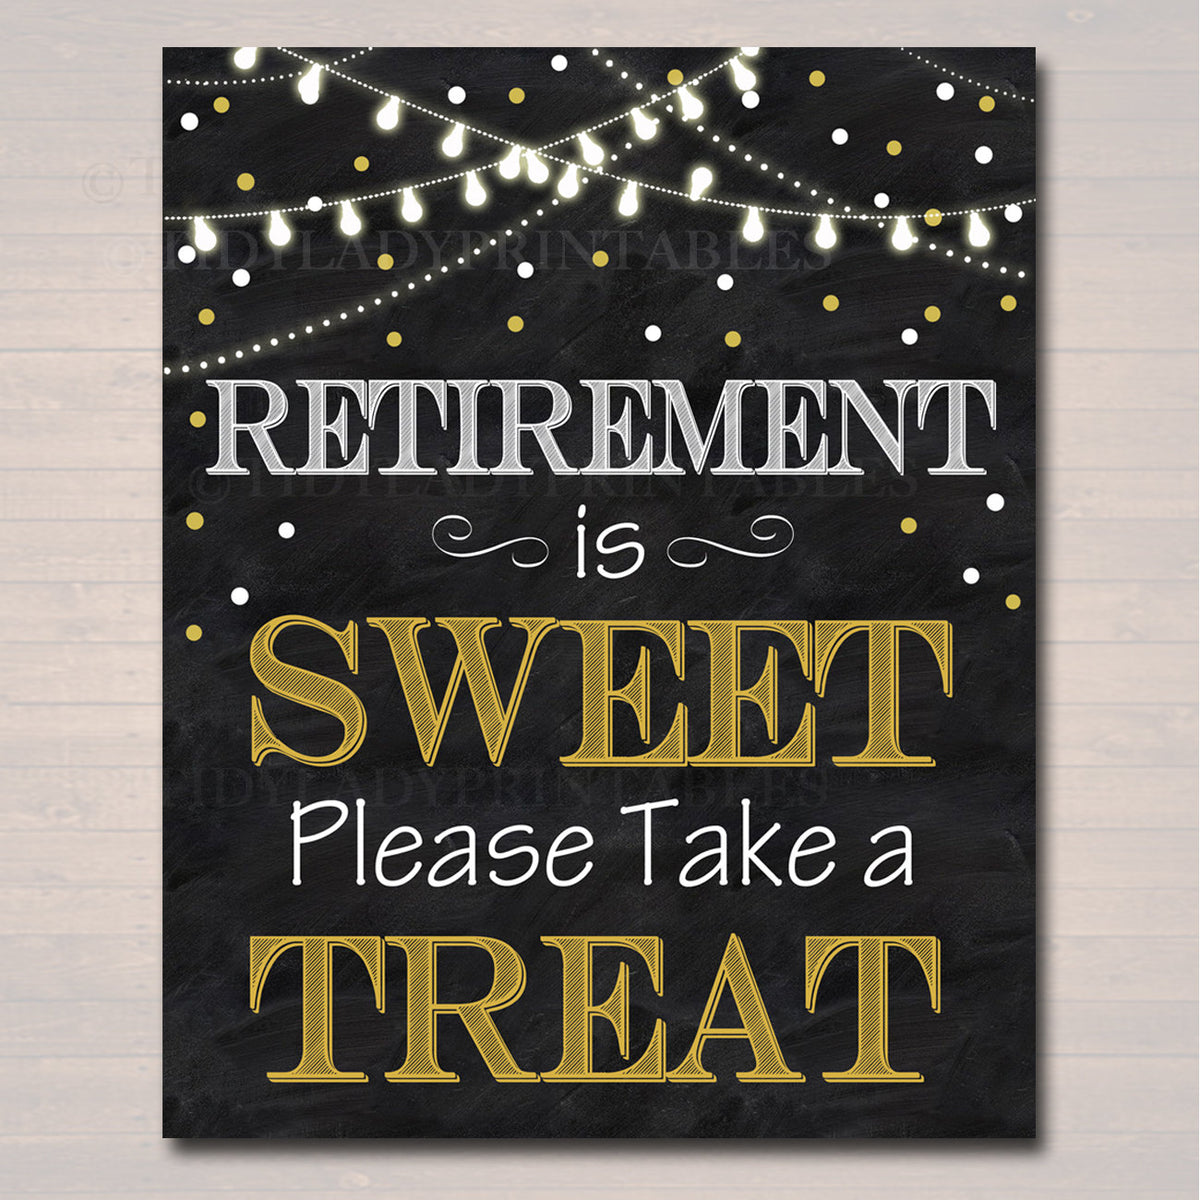 Retirement Is Sweet Party Sign Chalkboard Printable Dessert Table Sign Black Gold Party Lights Please Take A Treat Decor